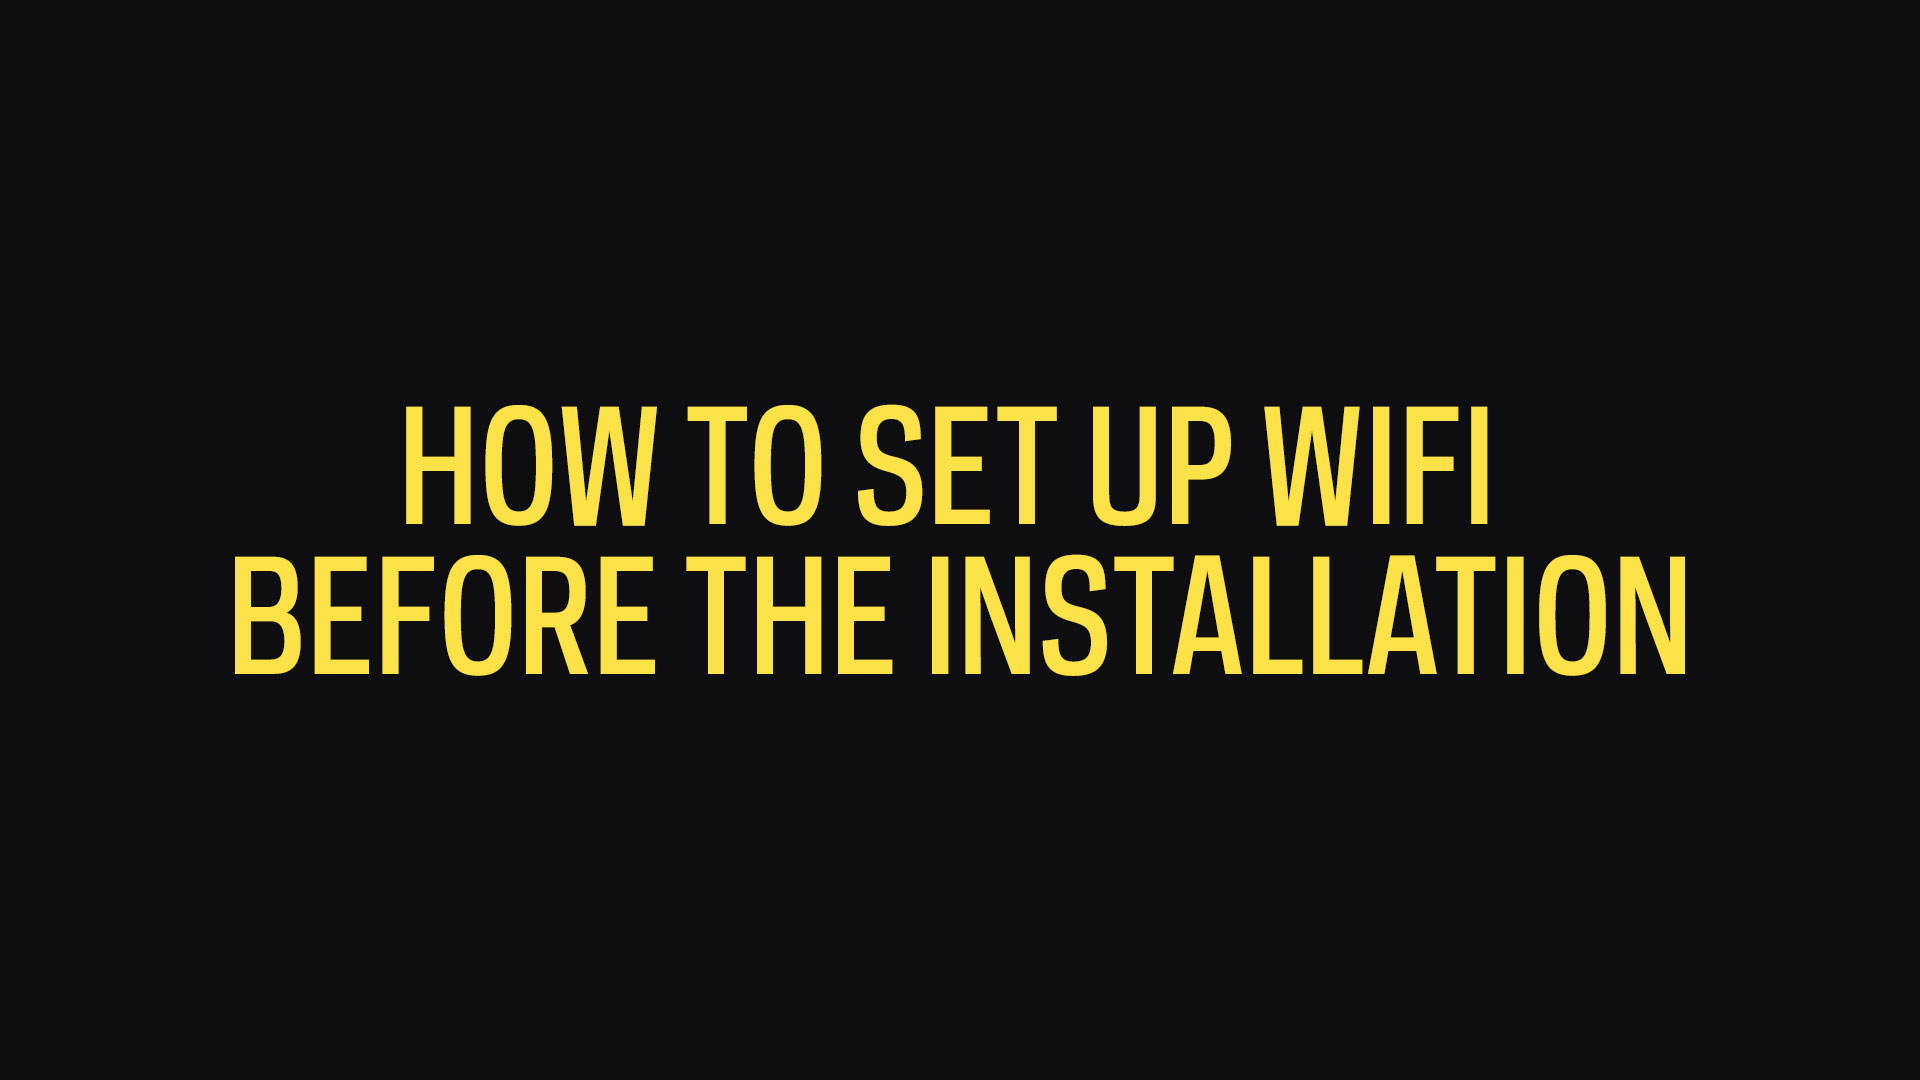 How To Set Up WiFi Before The Installation